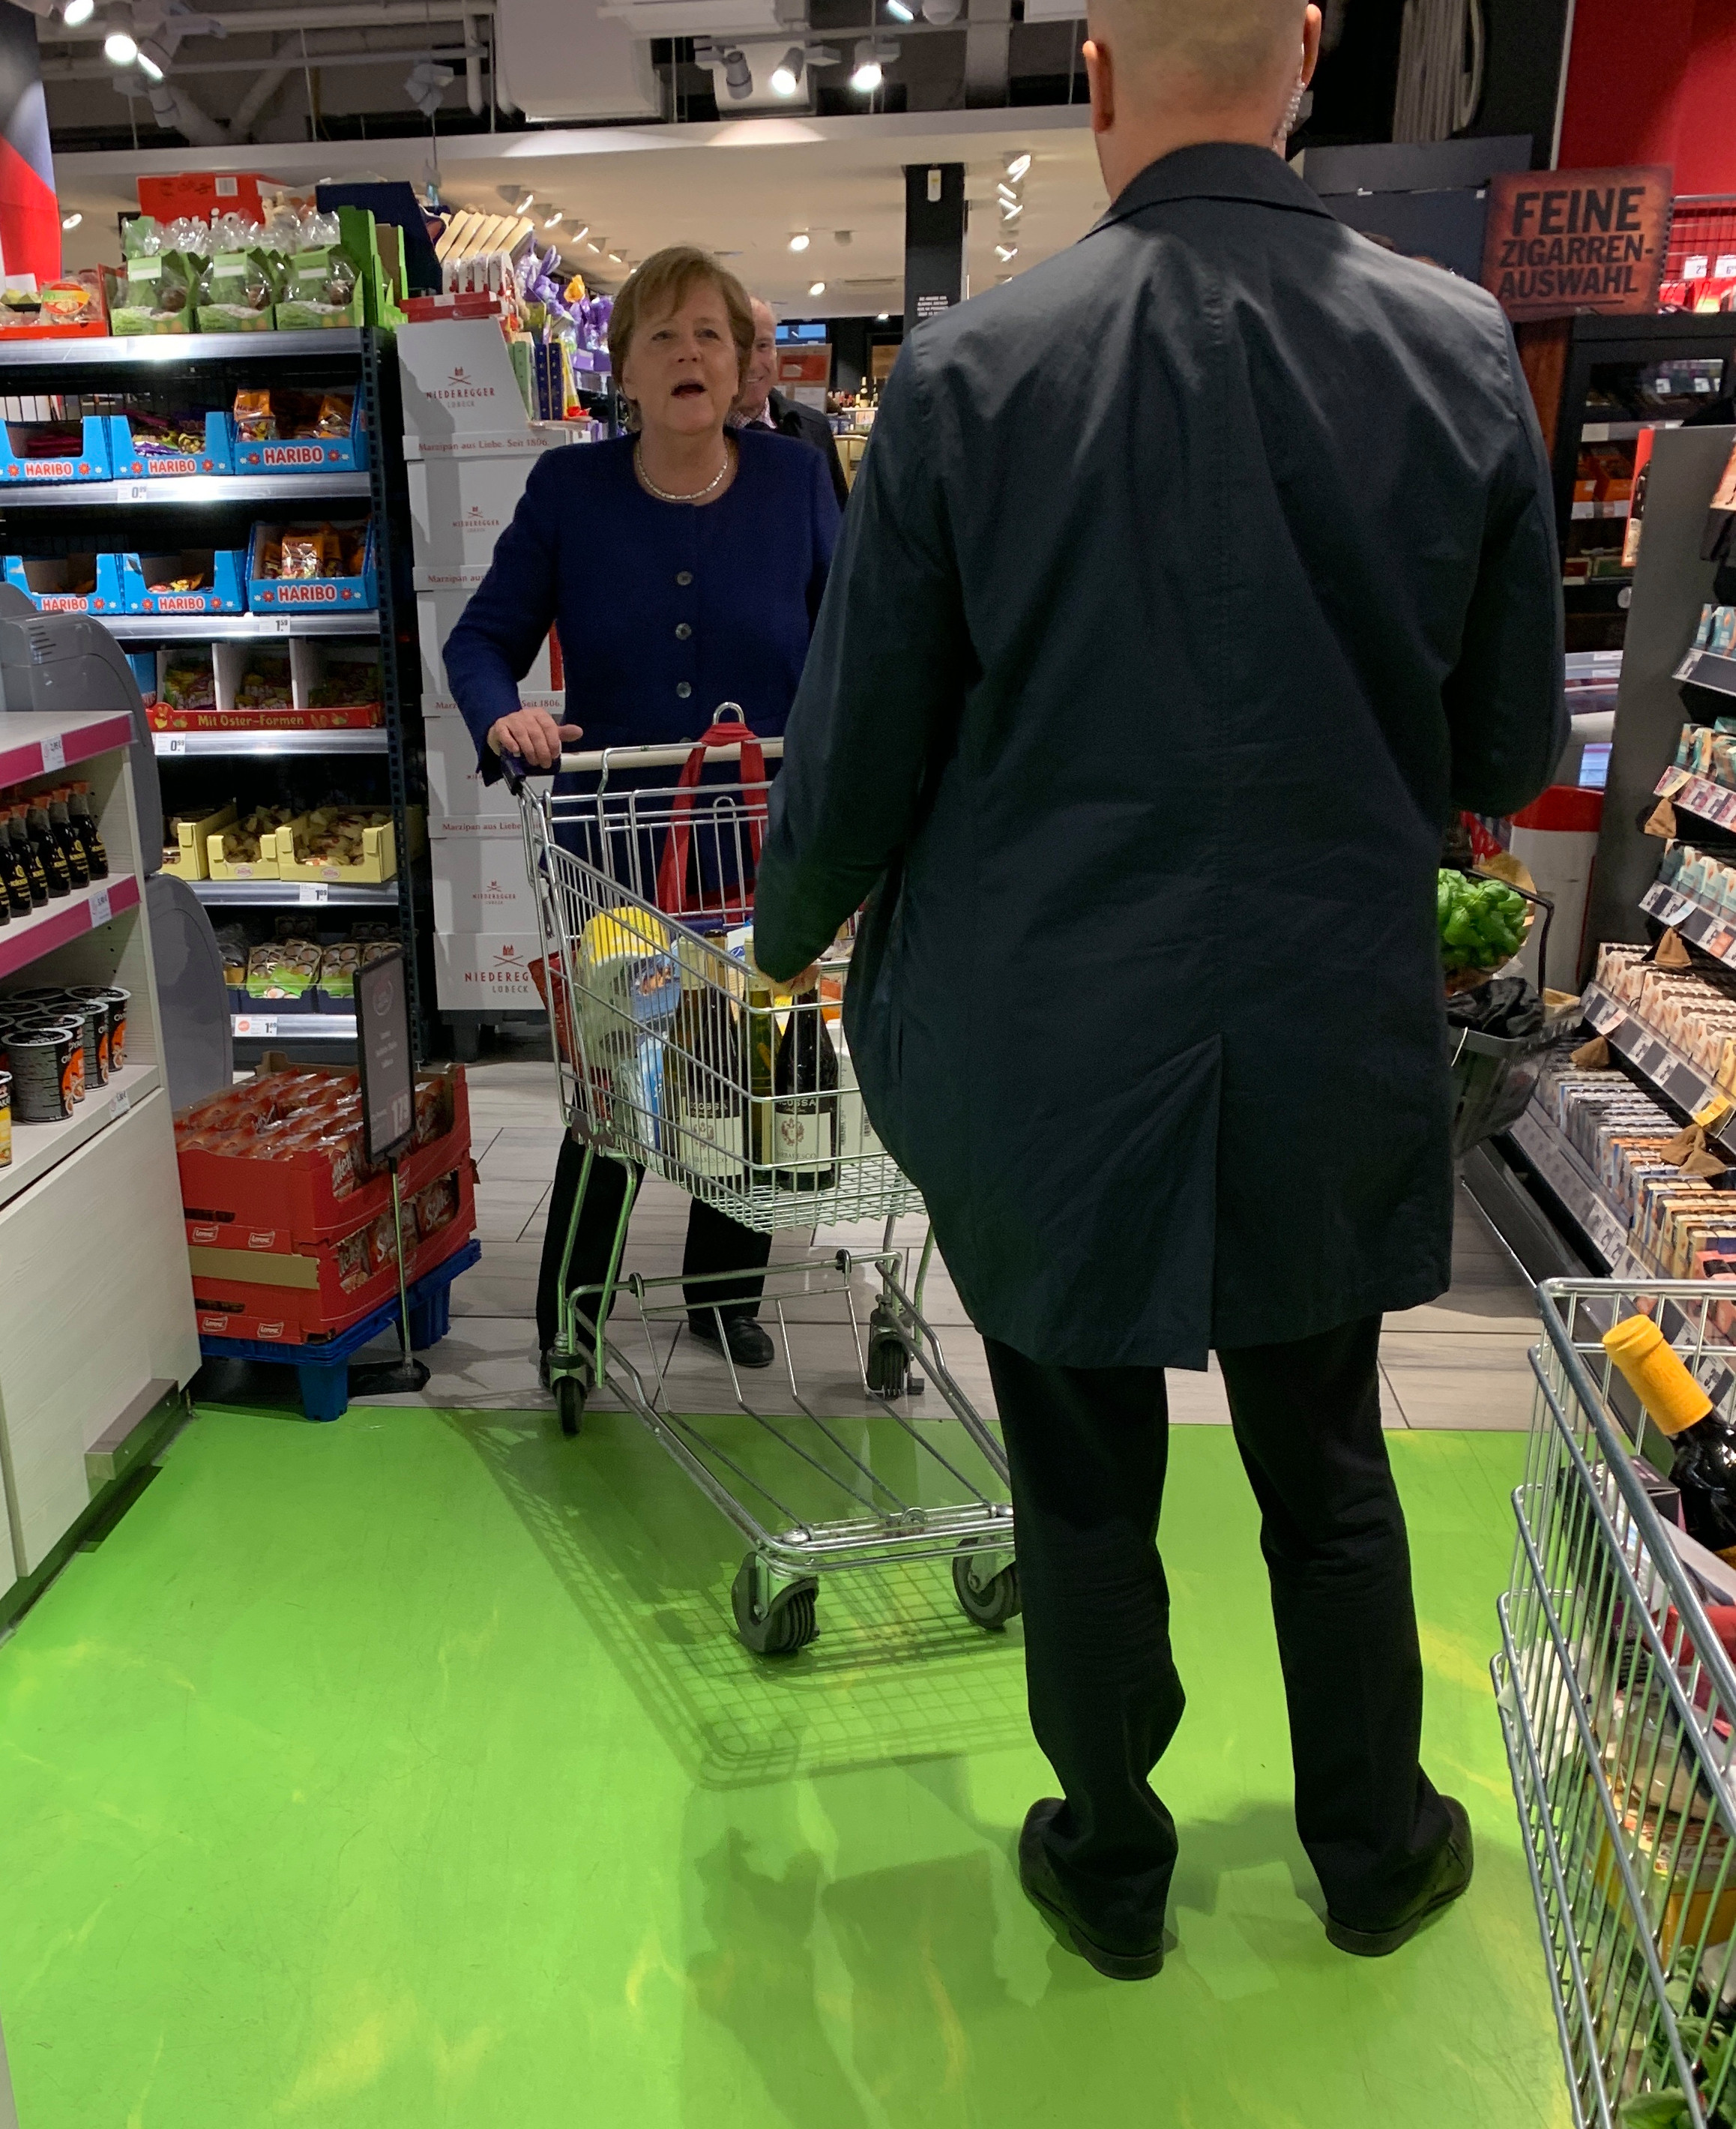 Merkel was also seen with soap in her shopping cart over the weekend